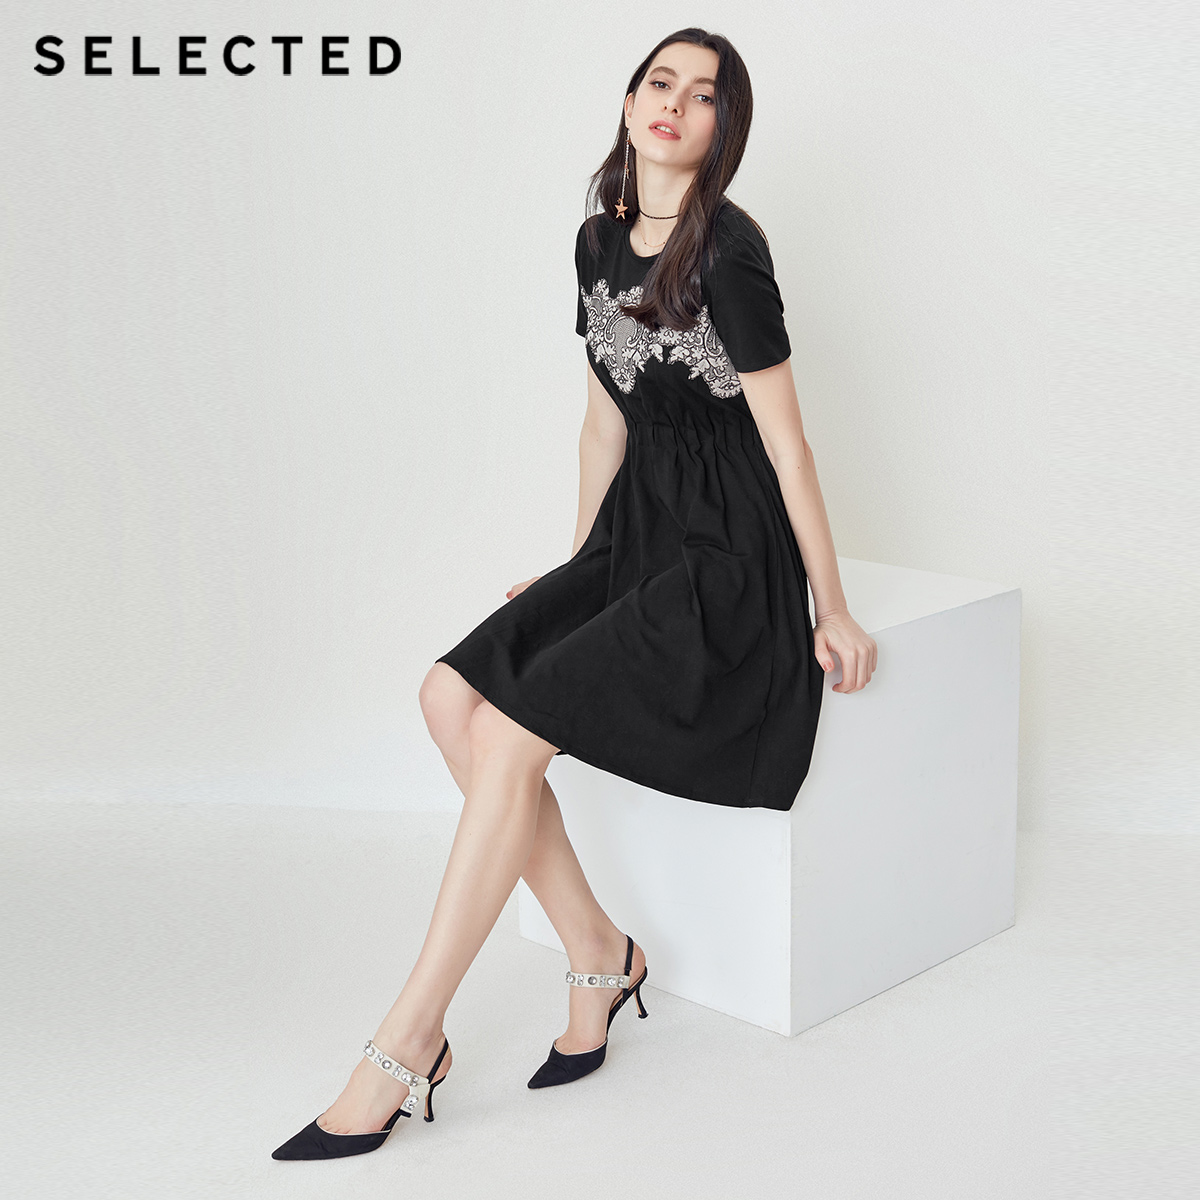 SELECTED women s lace short sleeve round neck dress S 418261502